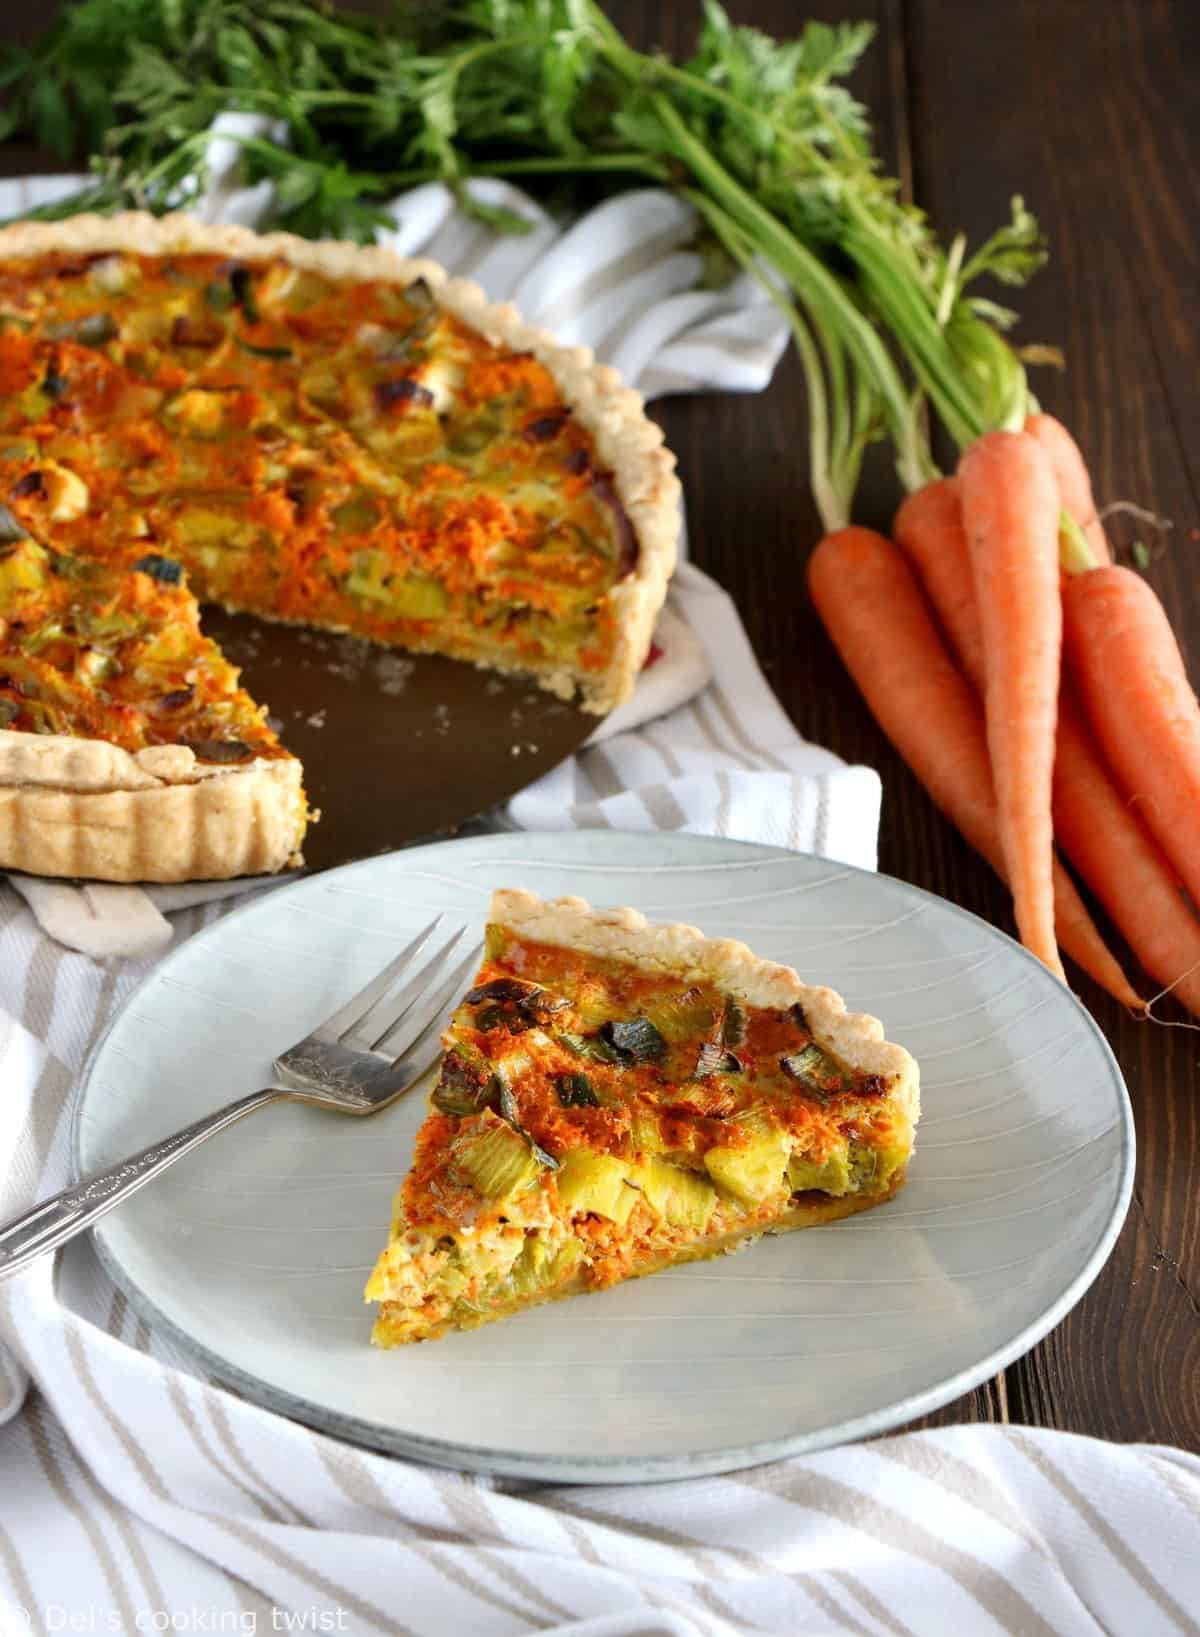 Spicy Curry Leek and Carrot Quiche